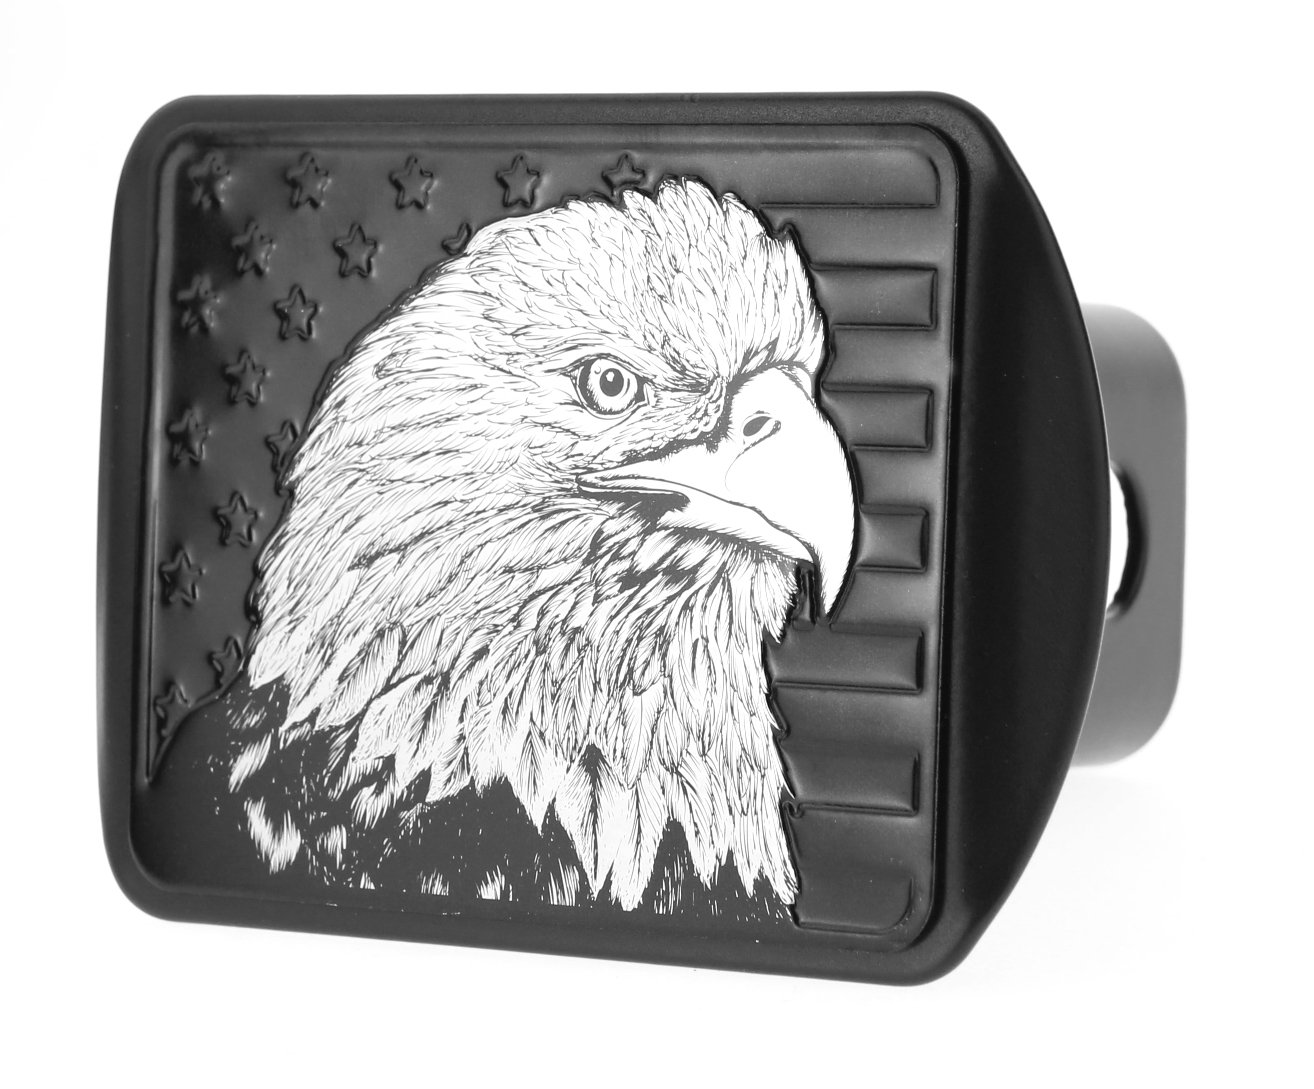 USA US American Flag Eagle Metal Flag Emblem on Metal Trailer Hitch Cover (Fits 2'' Receiver, Black flag) by eVerHITCH